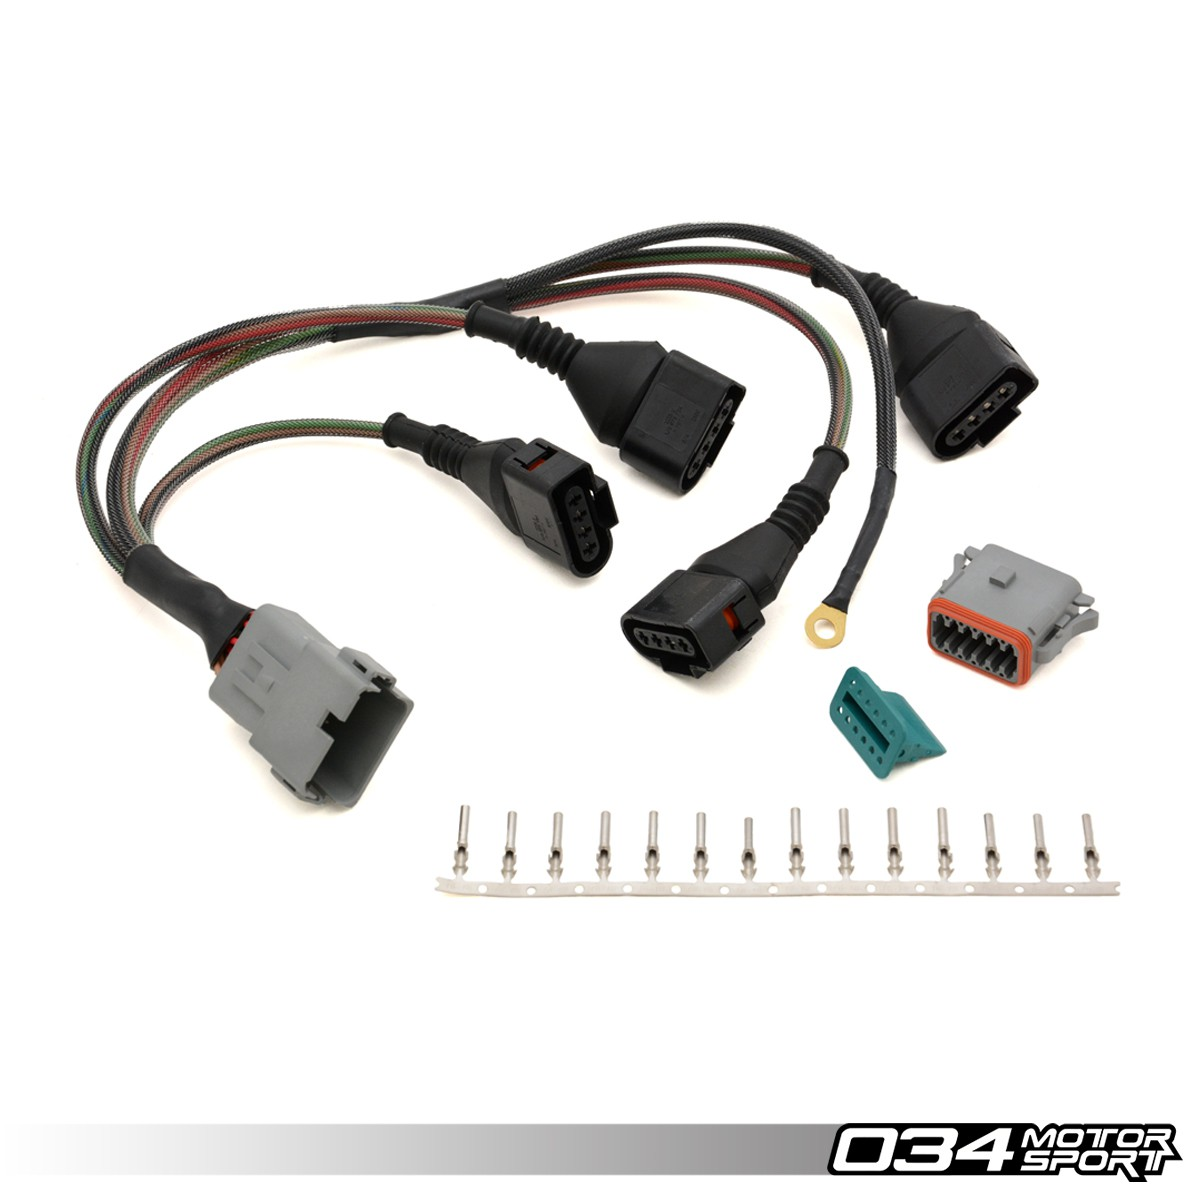 repair update harness audi volkswagen 18t with 4 wire coils 034motorsport 034 701 0004 2 repair update harness, audi volkswagen 1 8t with 4 wire coils Audi Ignition Coil Problem at edmiracle.co